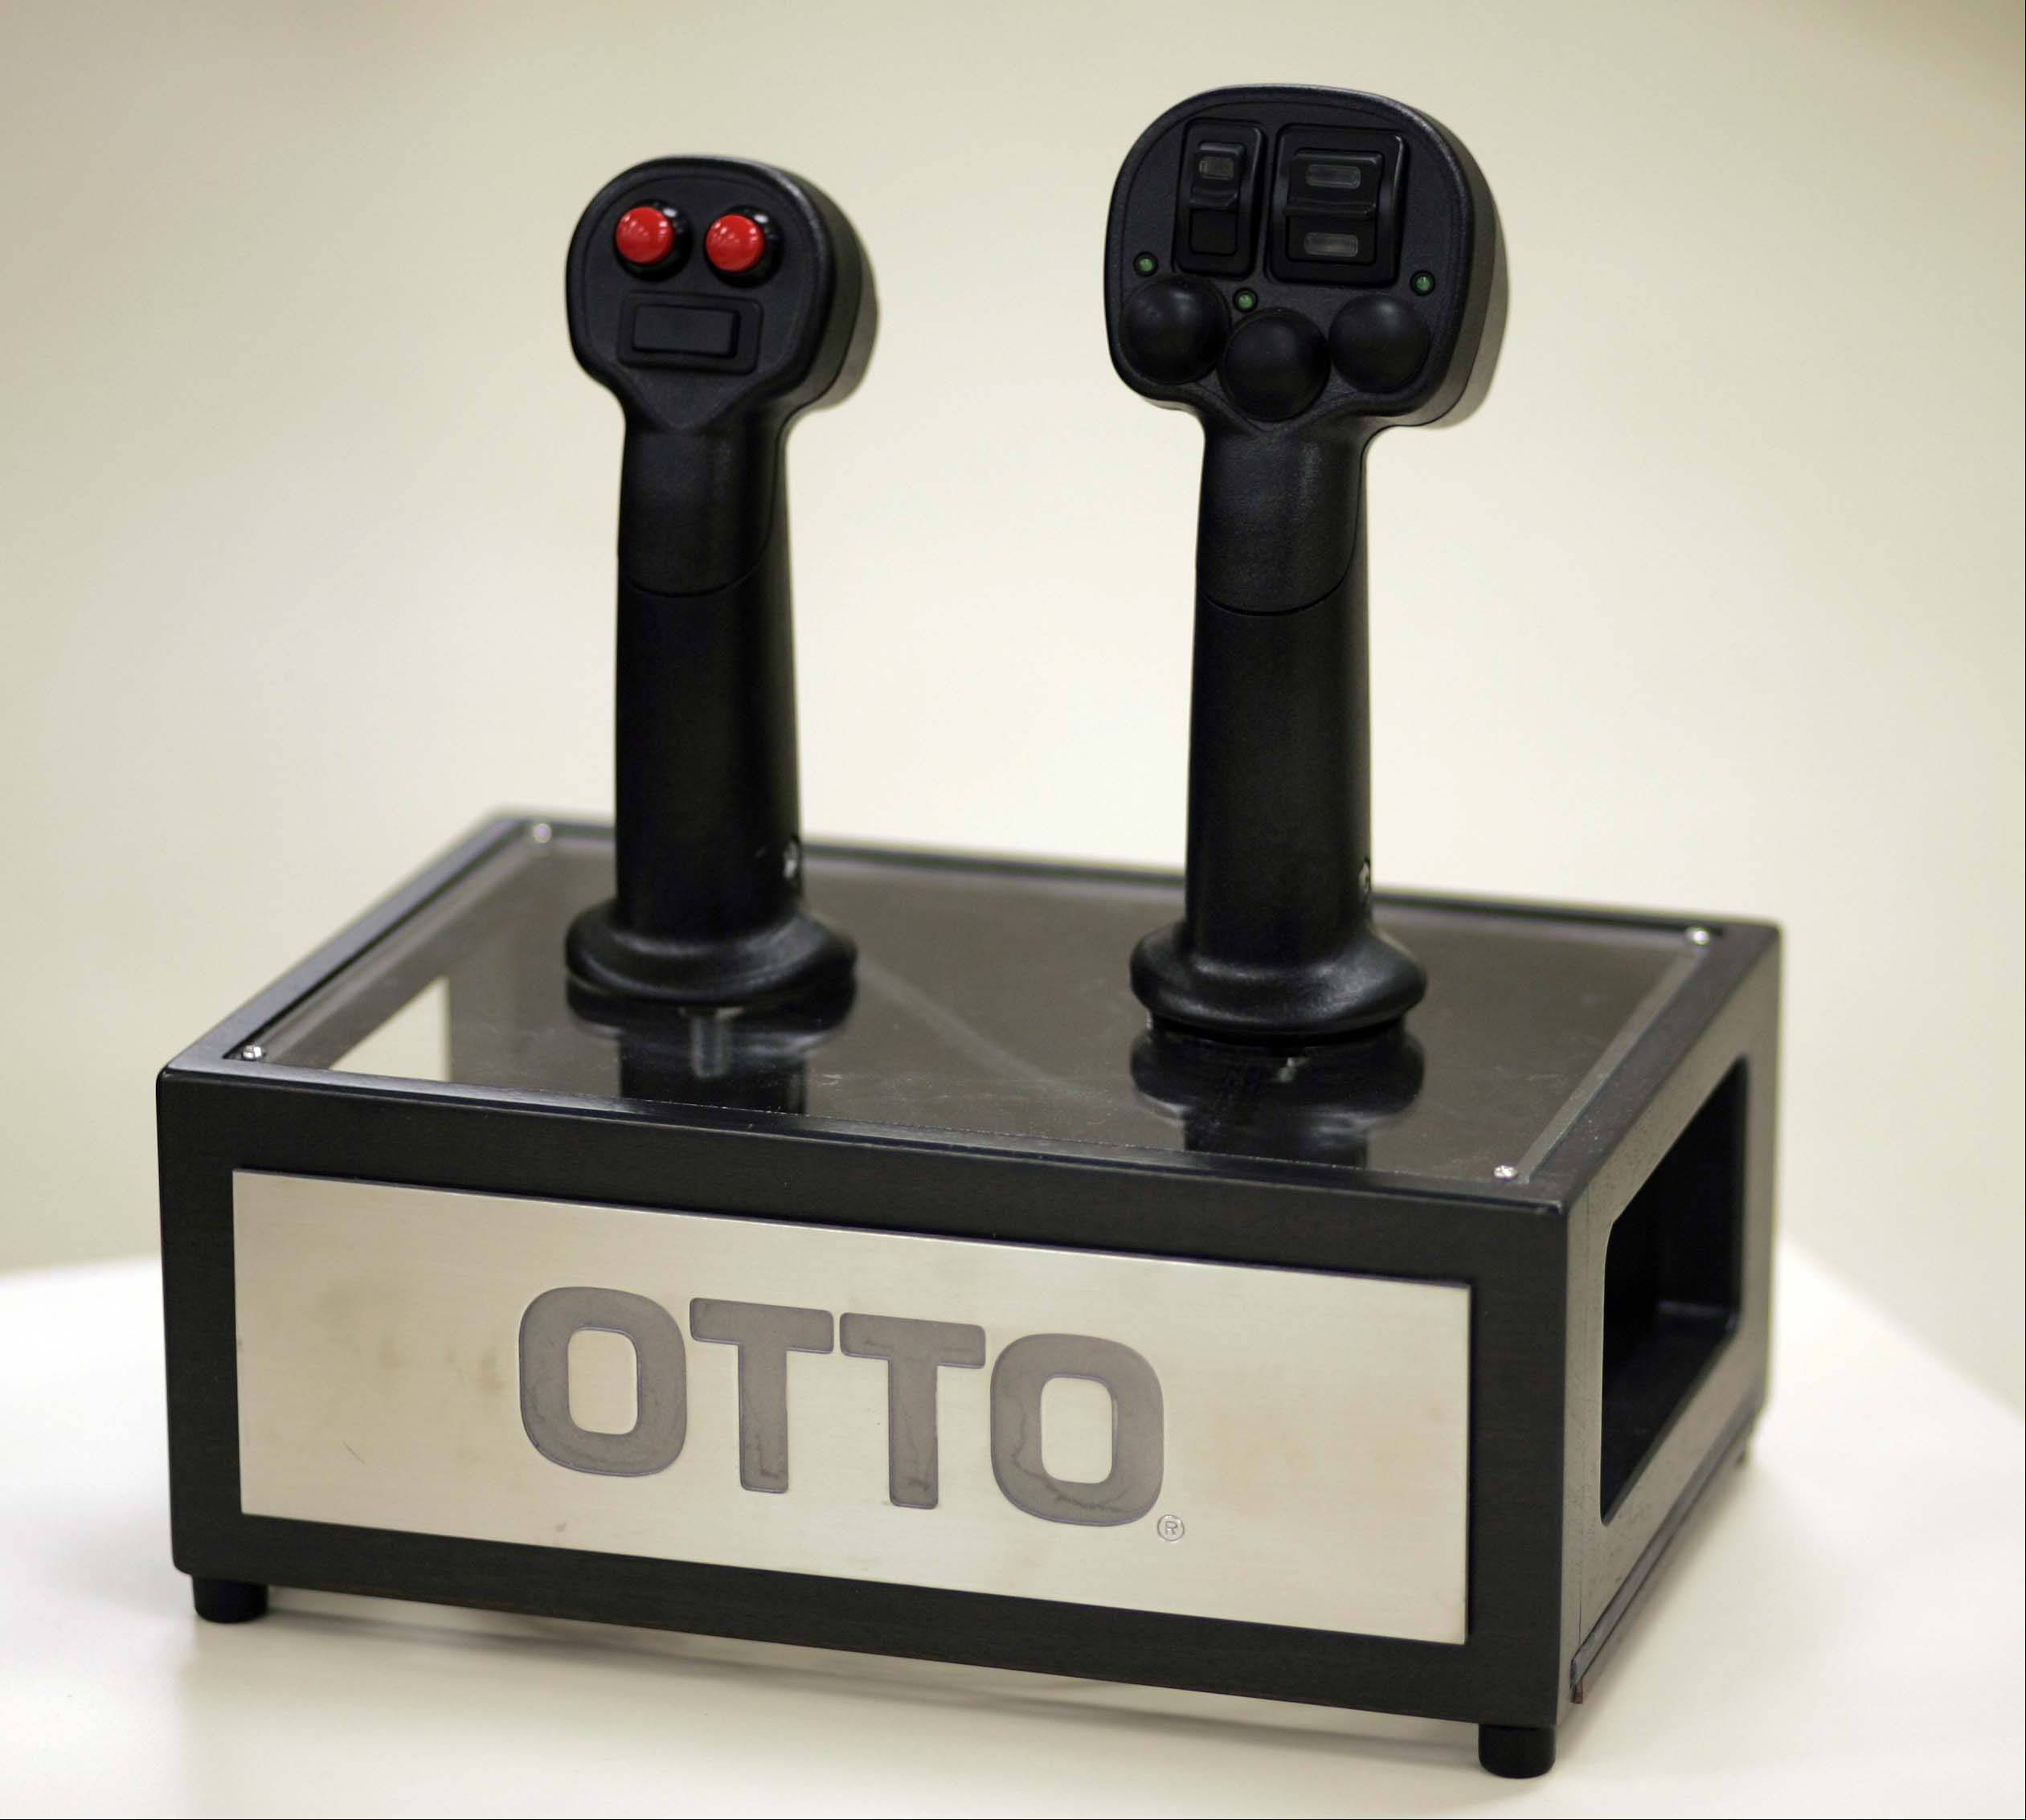 Here is a couple of the controllers that would commonly be used in large construction or agricultural machines.